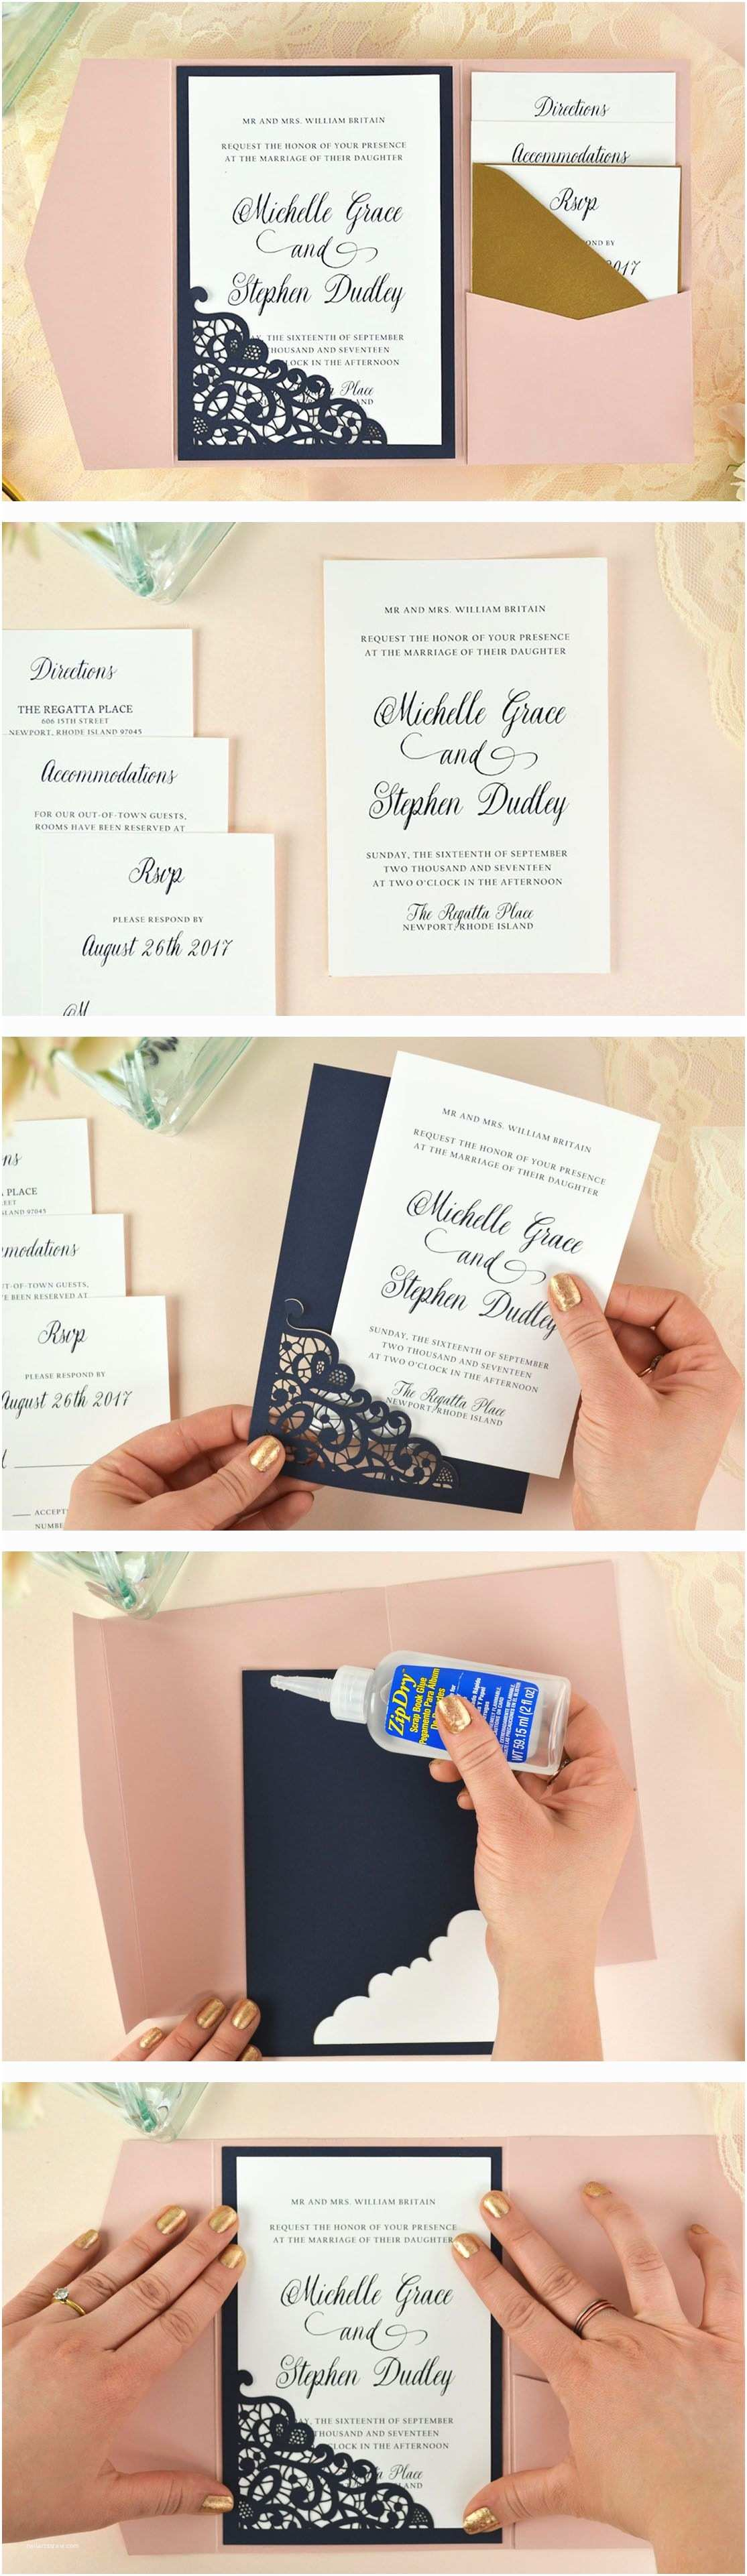 Parts Of Wedding Invitation Lace Laser Cut Wedding Invitation Free Invi and Diy